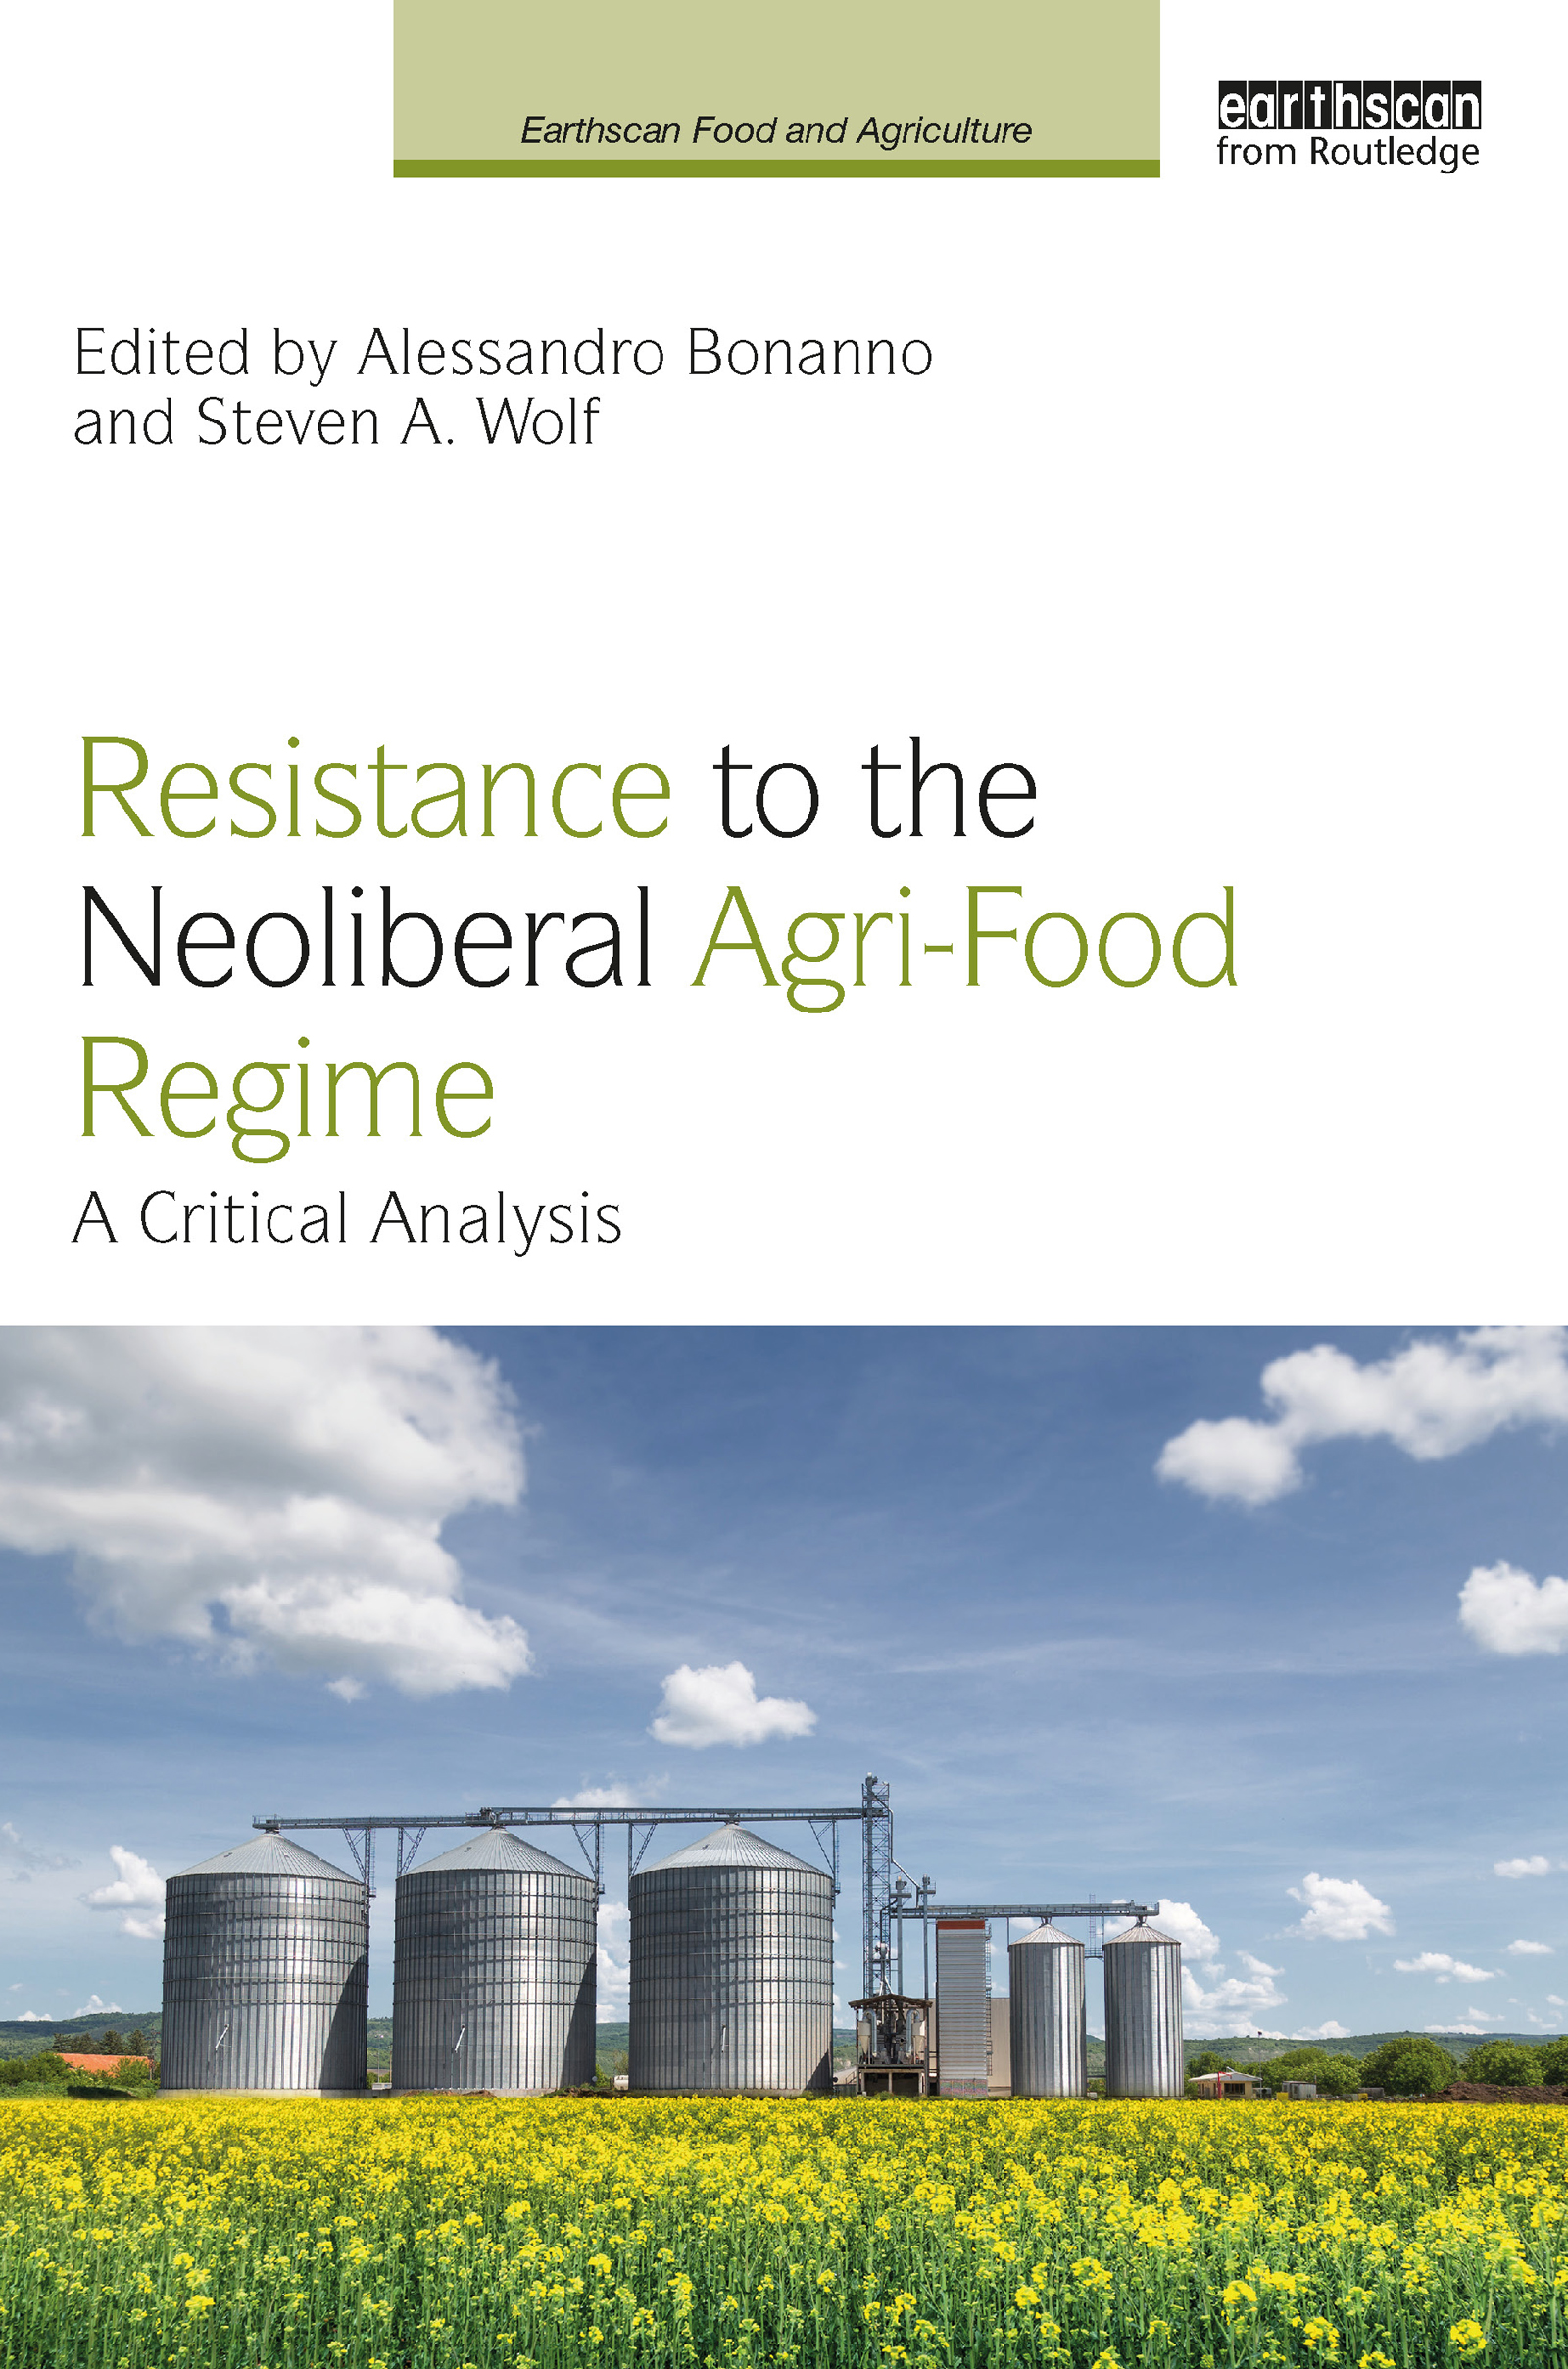 Resistance to the Neoliberal Agri-Food Regime